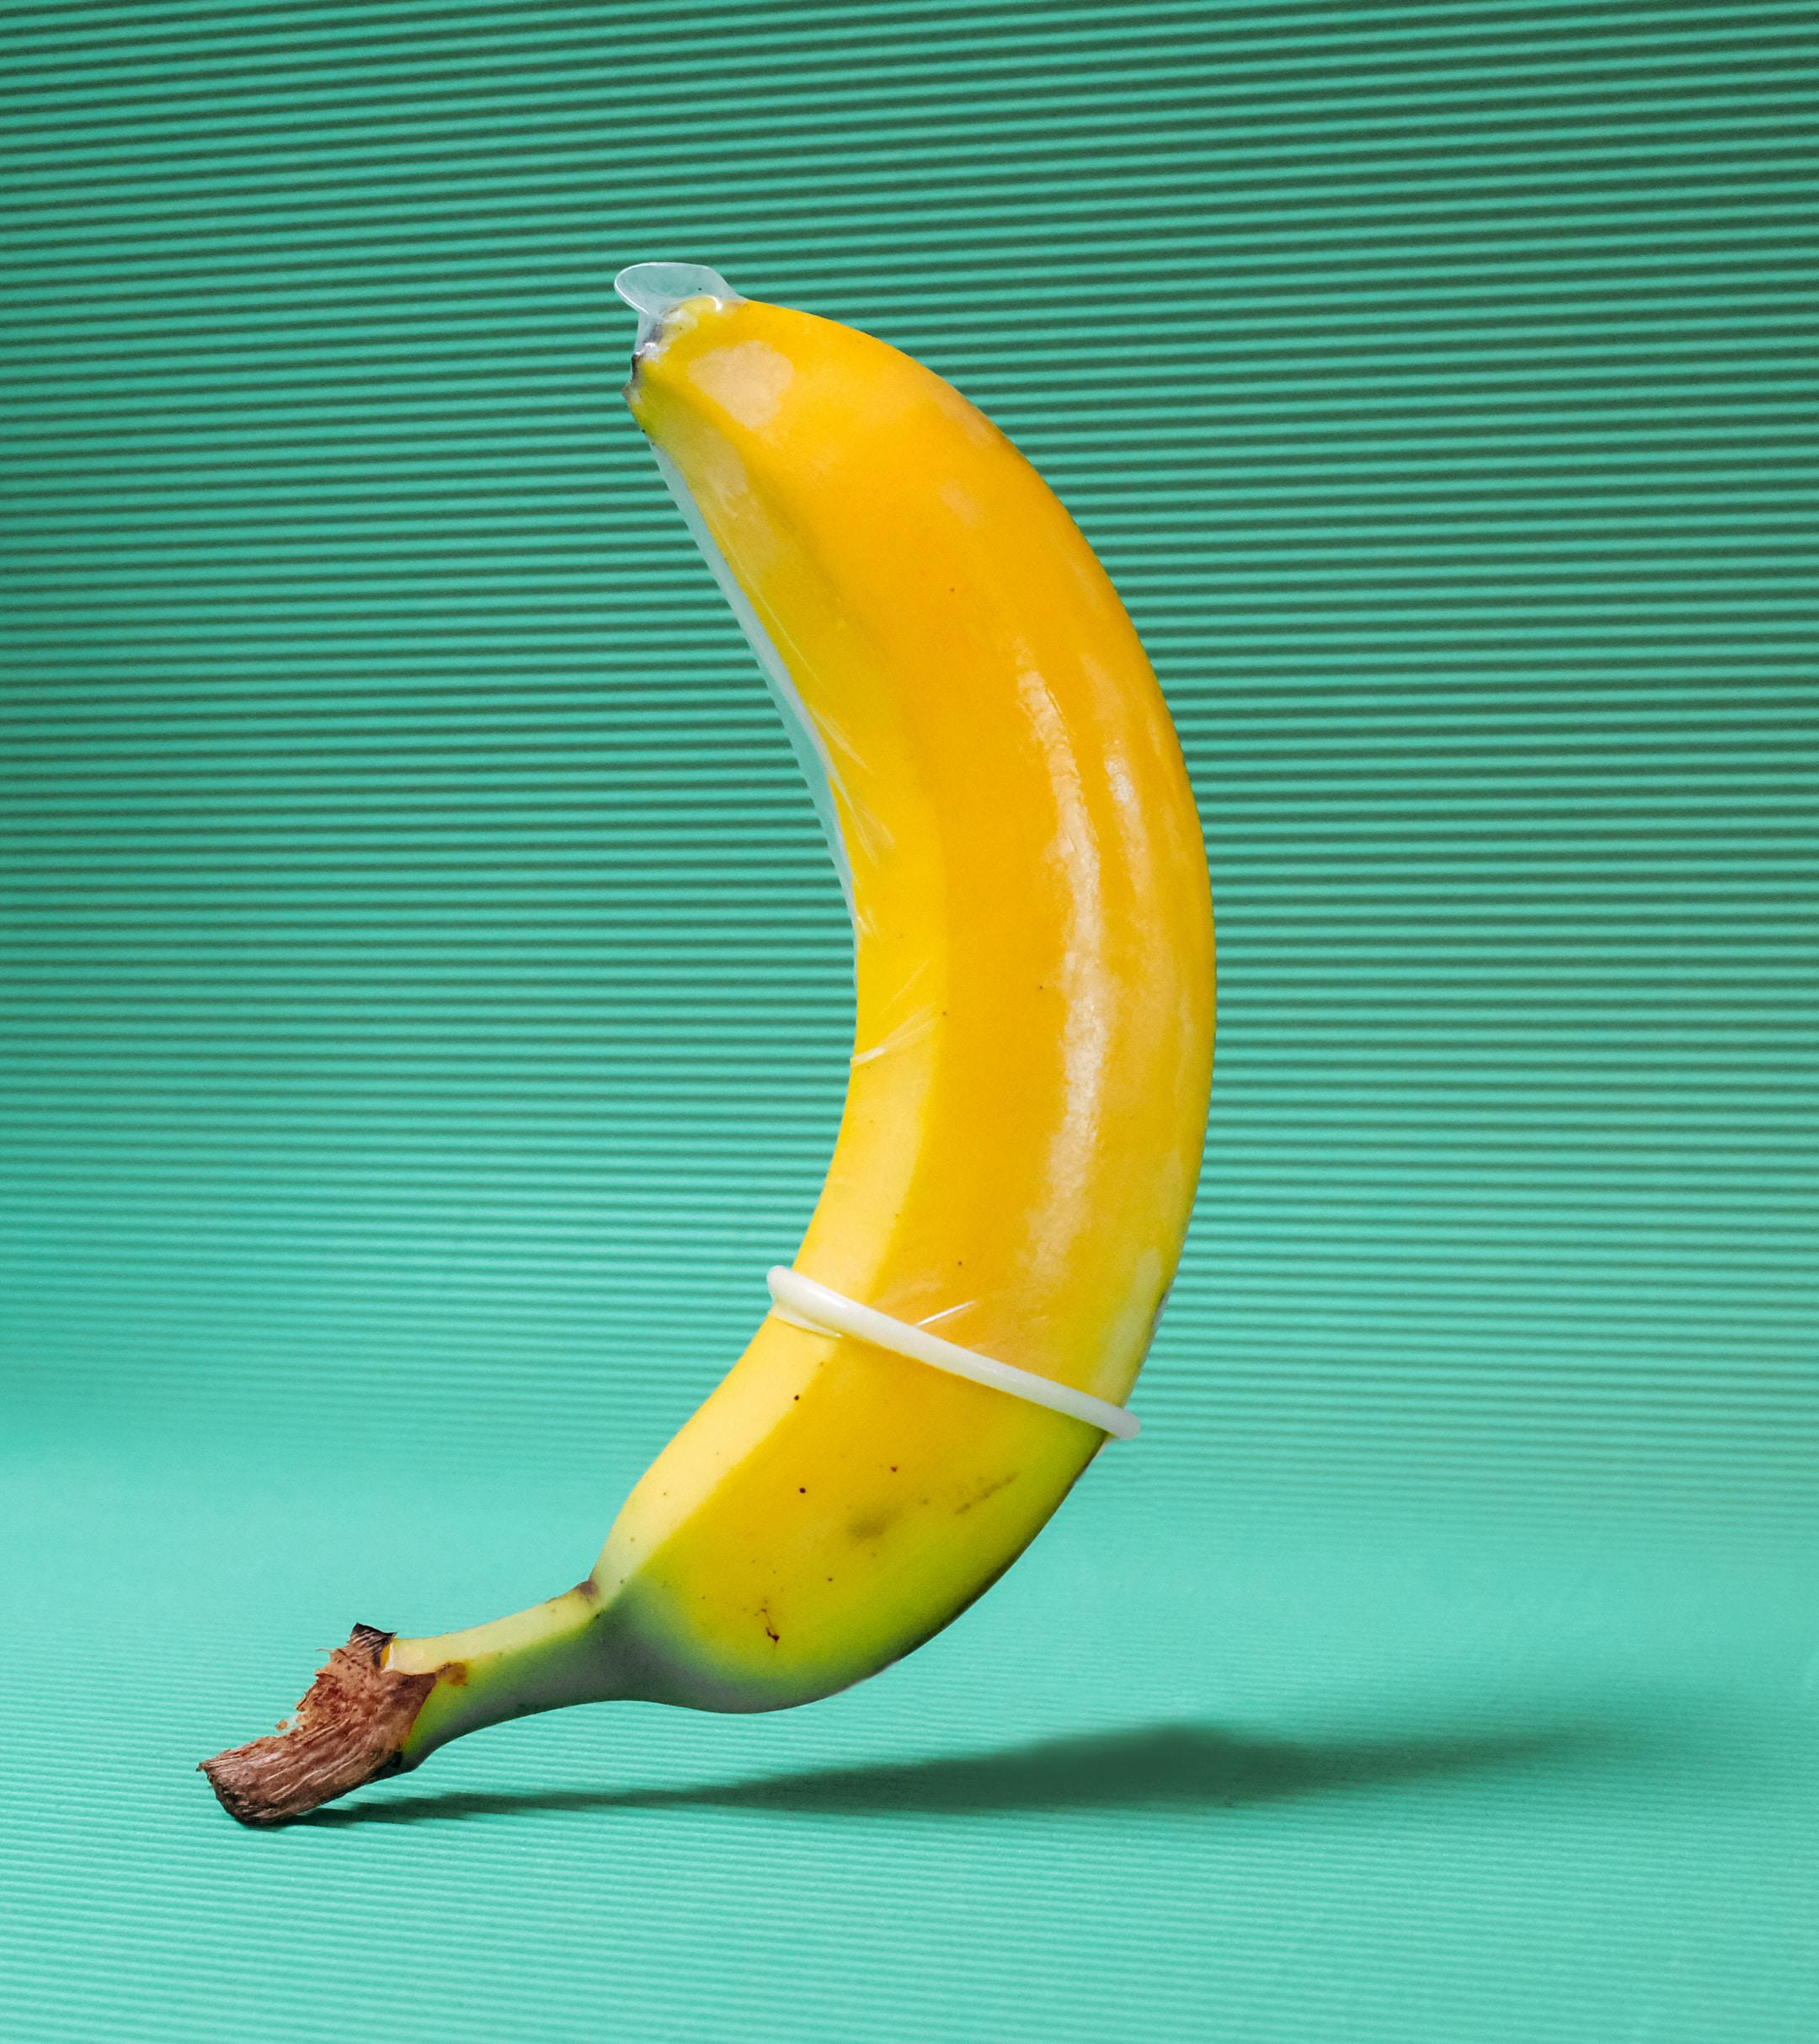 Sex Education: Banana